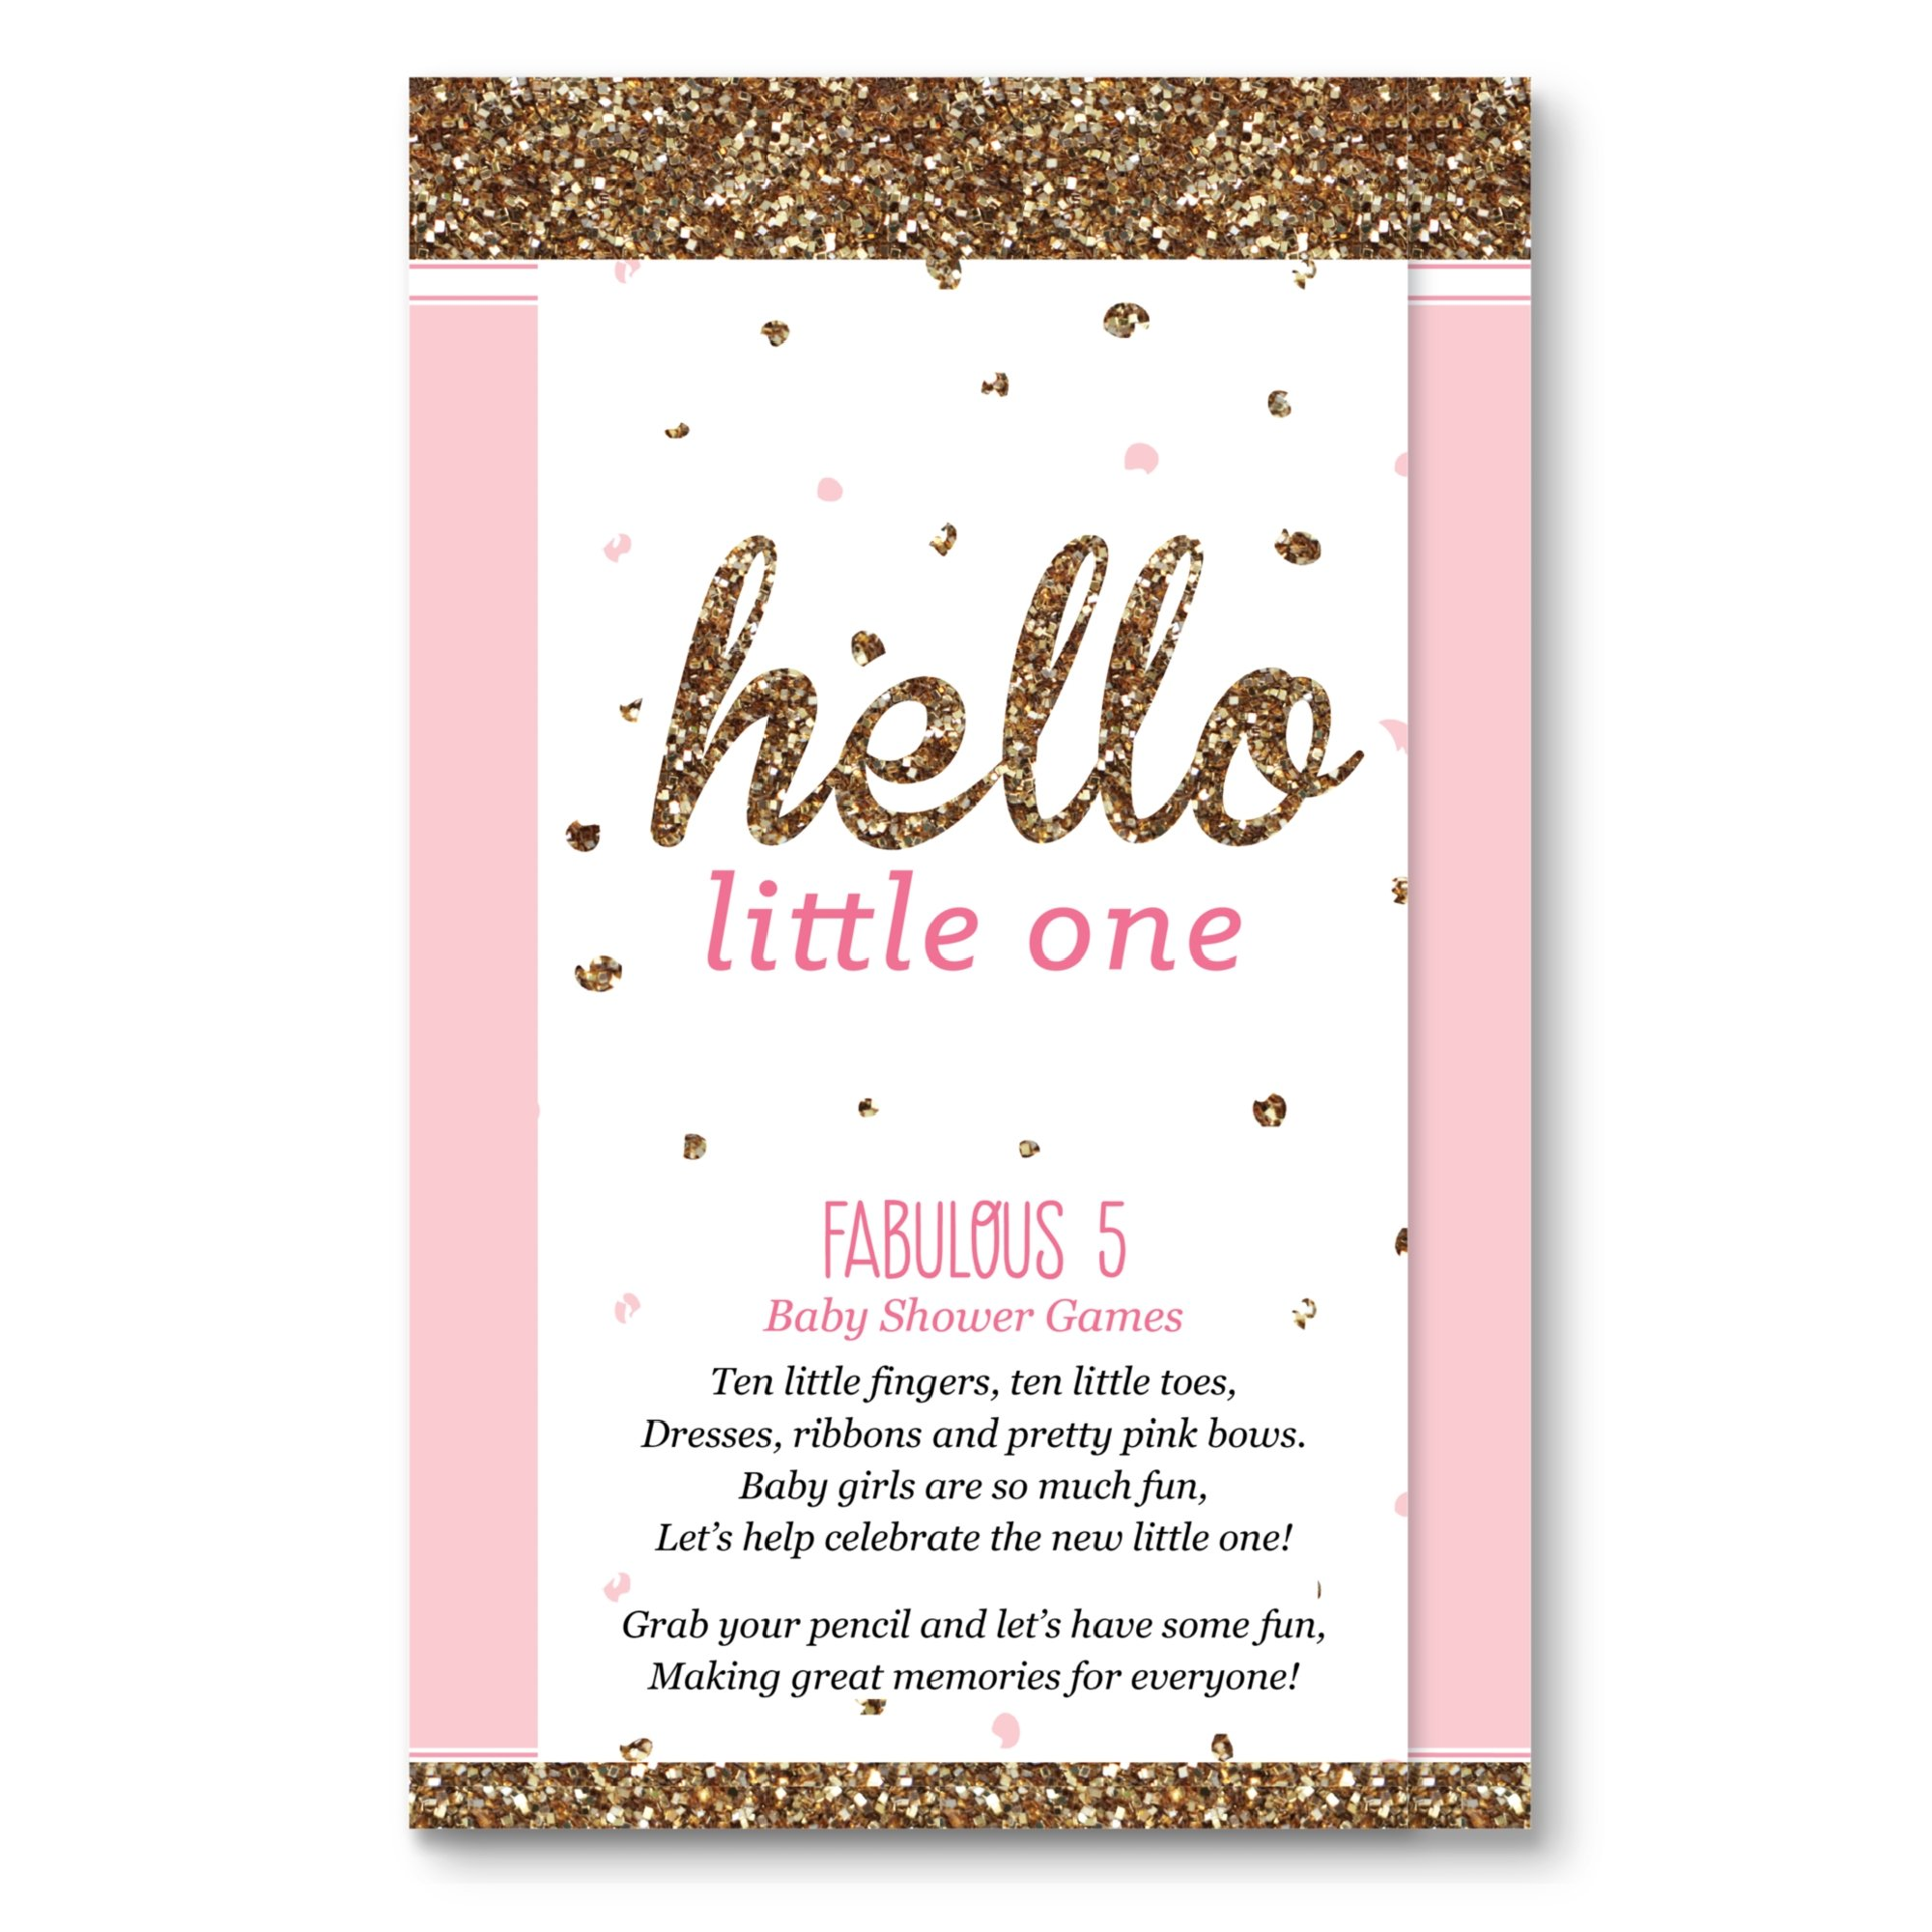 Big Dot of Happiness Hello Little One Girl - Pink and Gold - Baby Shower Games Pack – 5 Games in 1 - Fabulous 5 - Set of 12